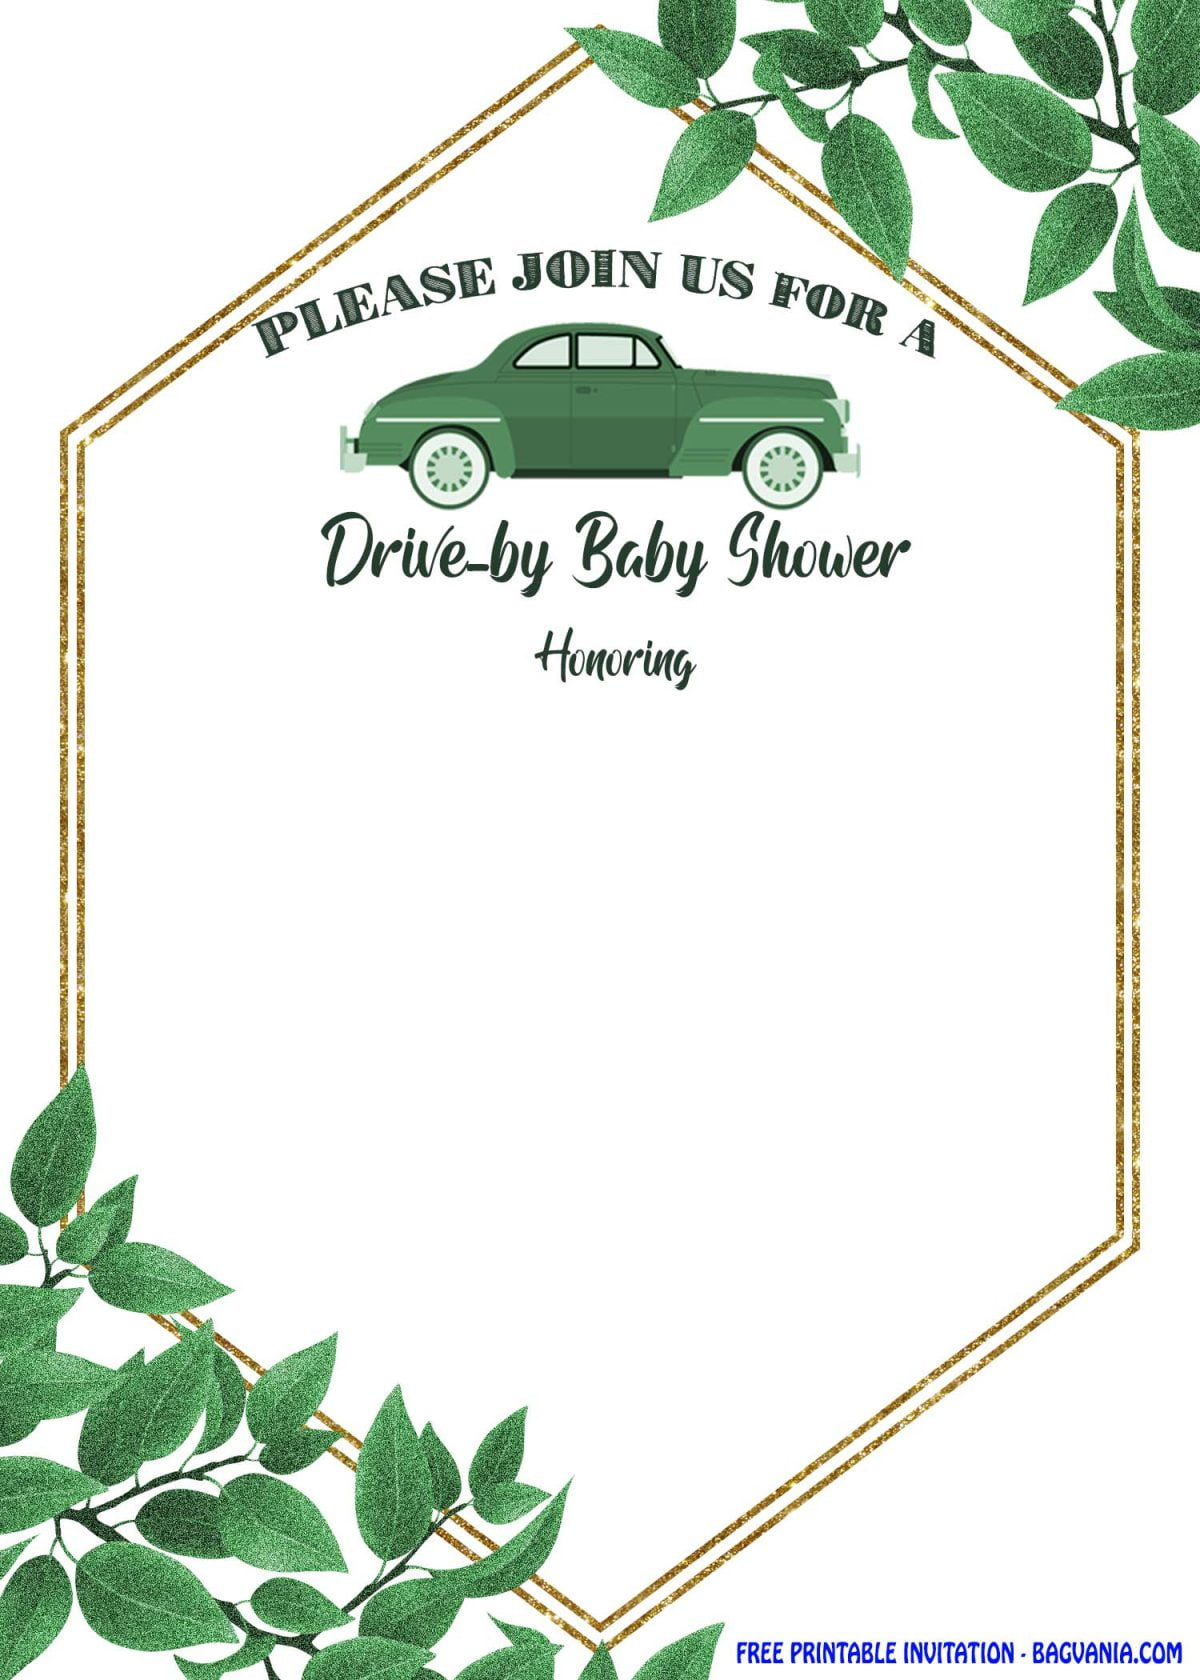 Free Printable Greenery Hexagonal Drive By Invitation Templates With Green Leaf